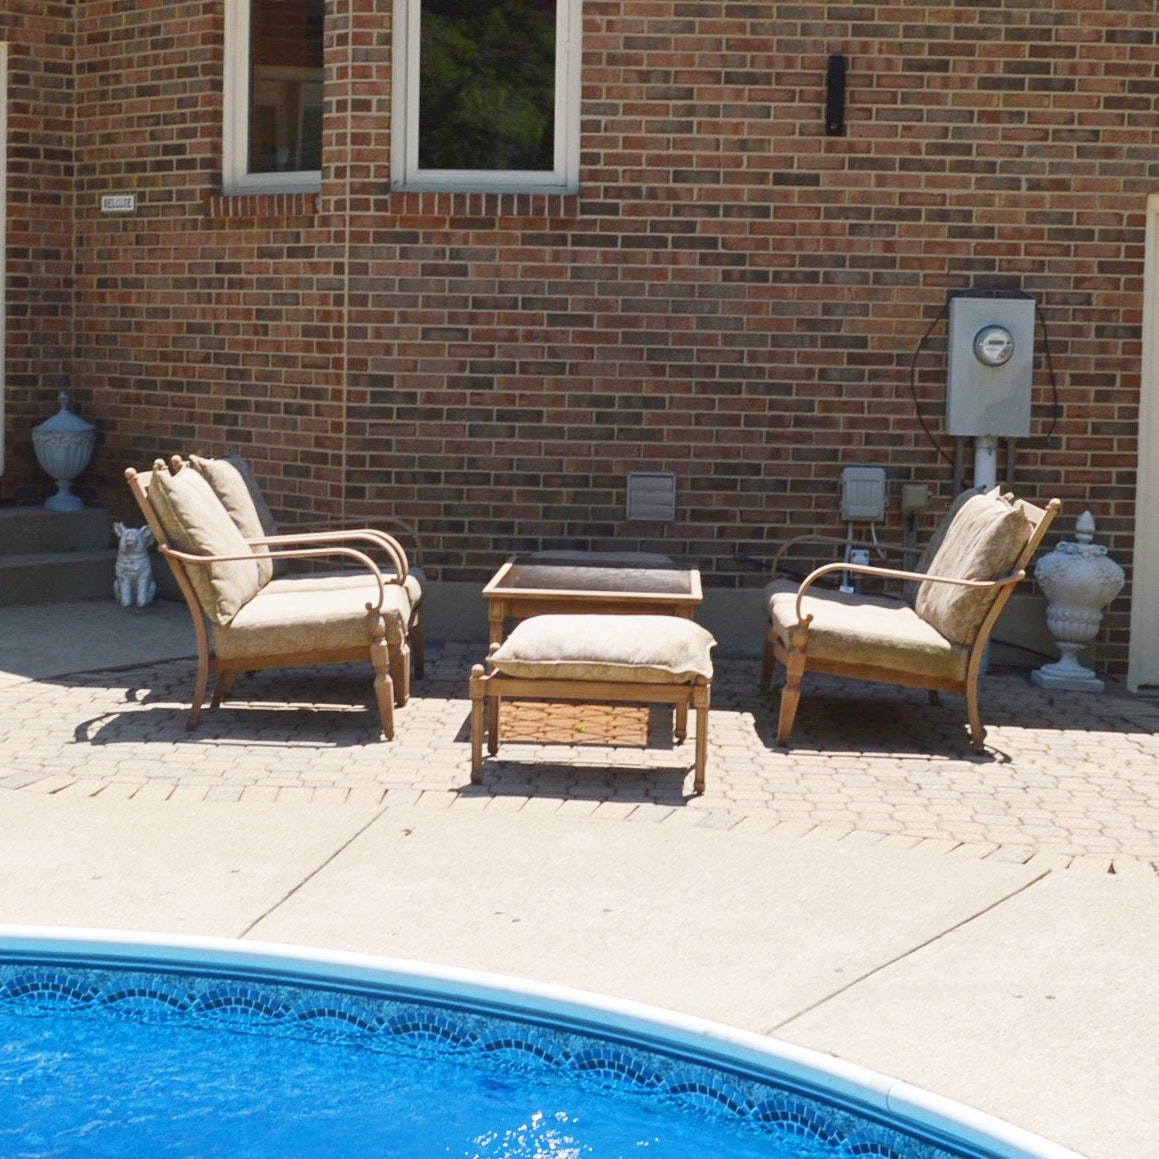 Hampton-Bay Patio Sofas, Coffee Table, and Ottomans